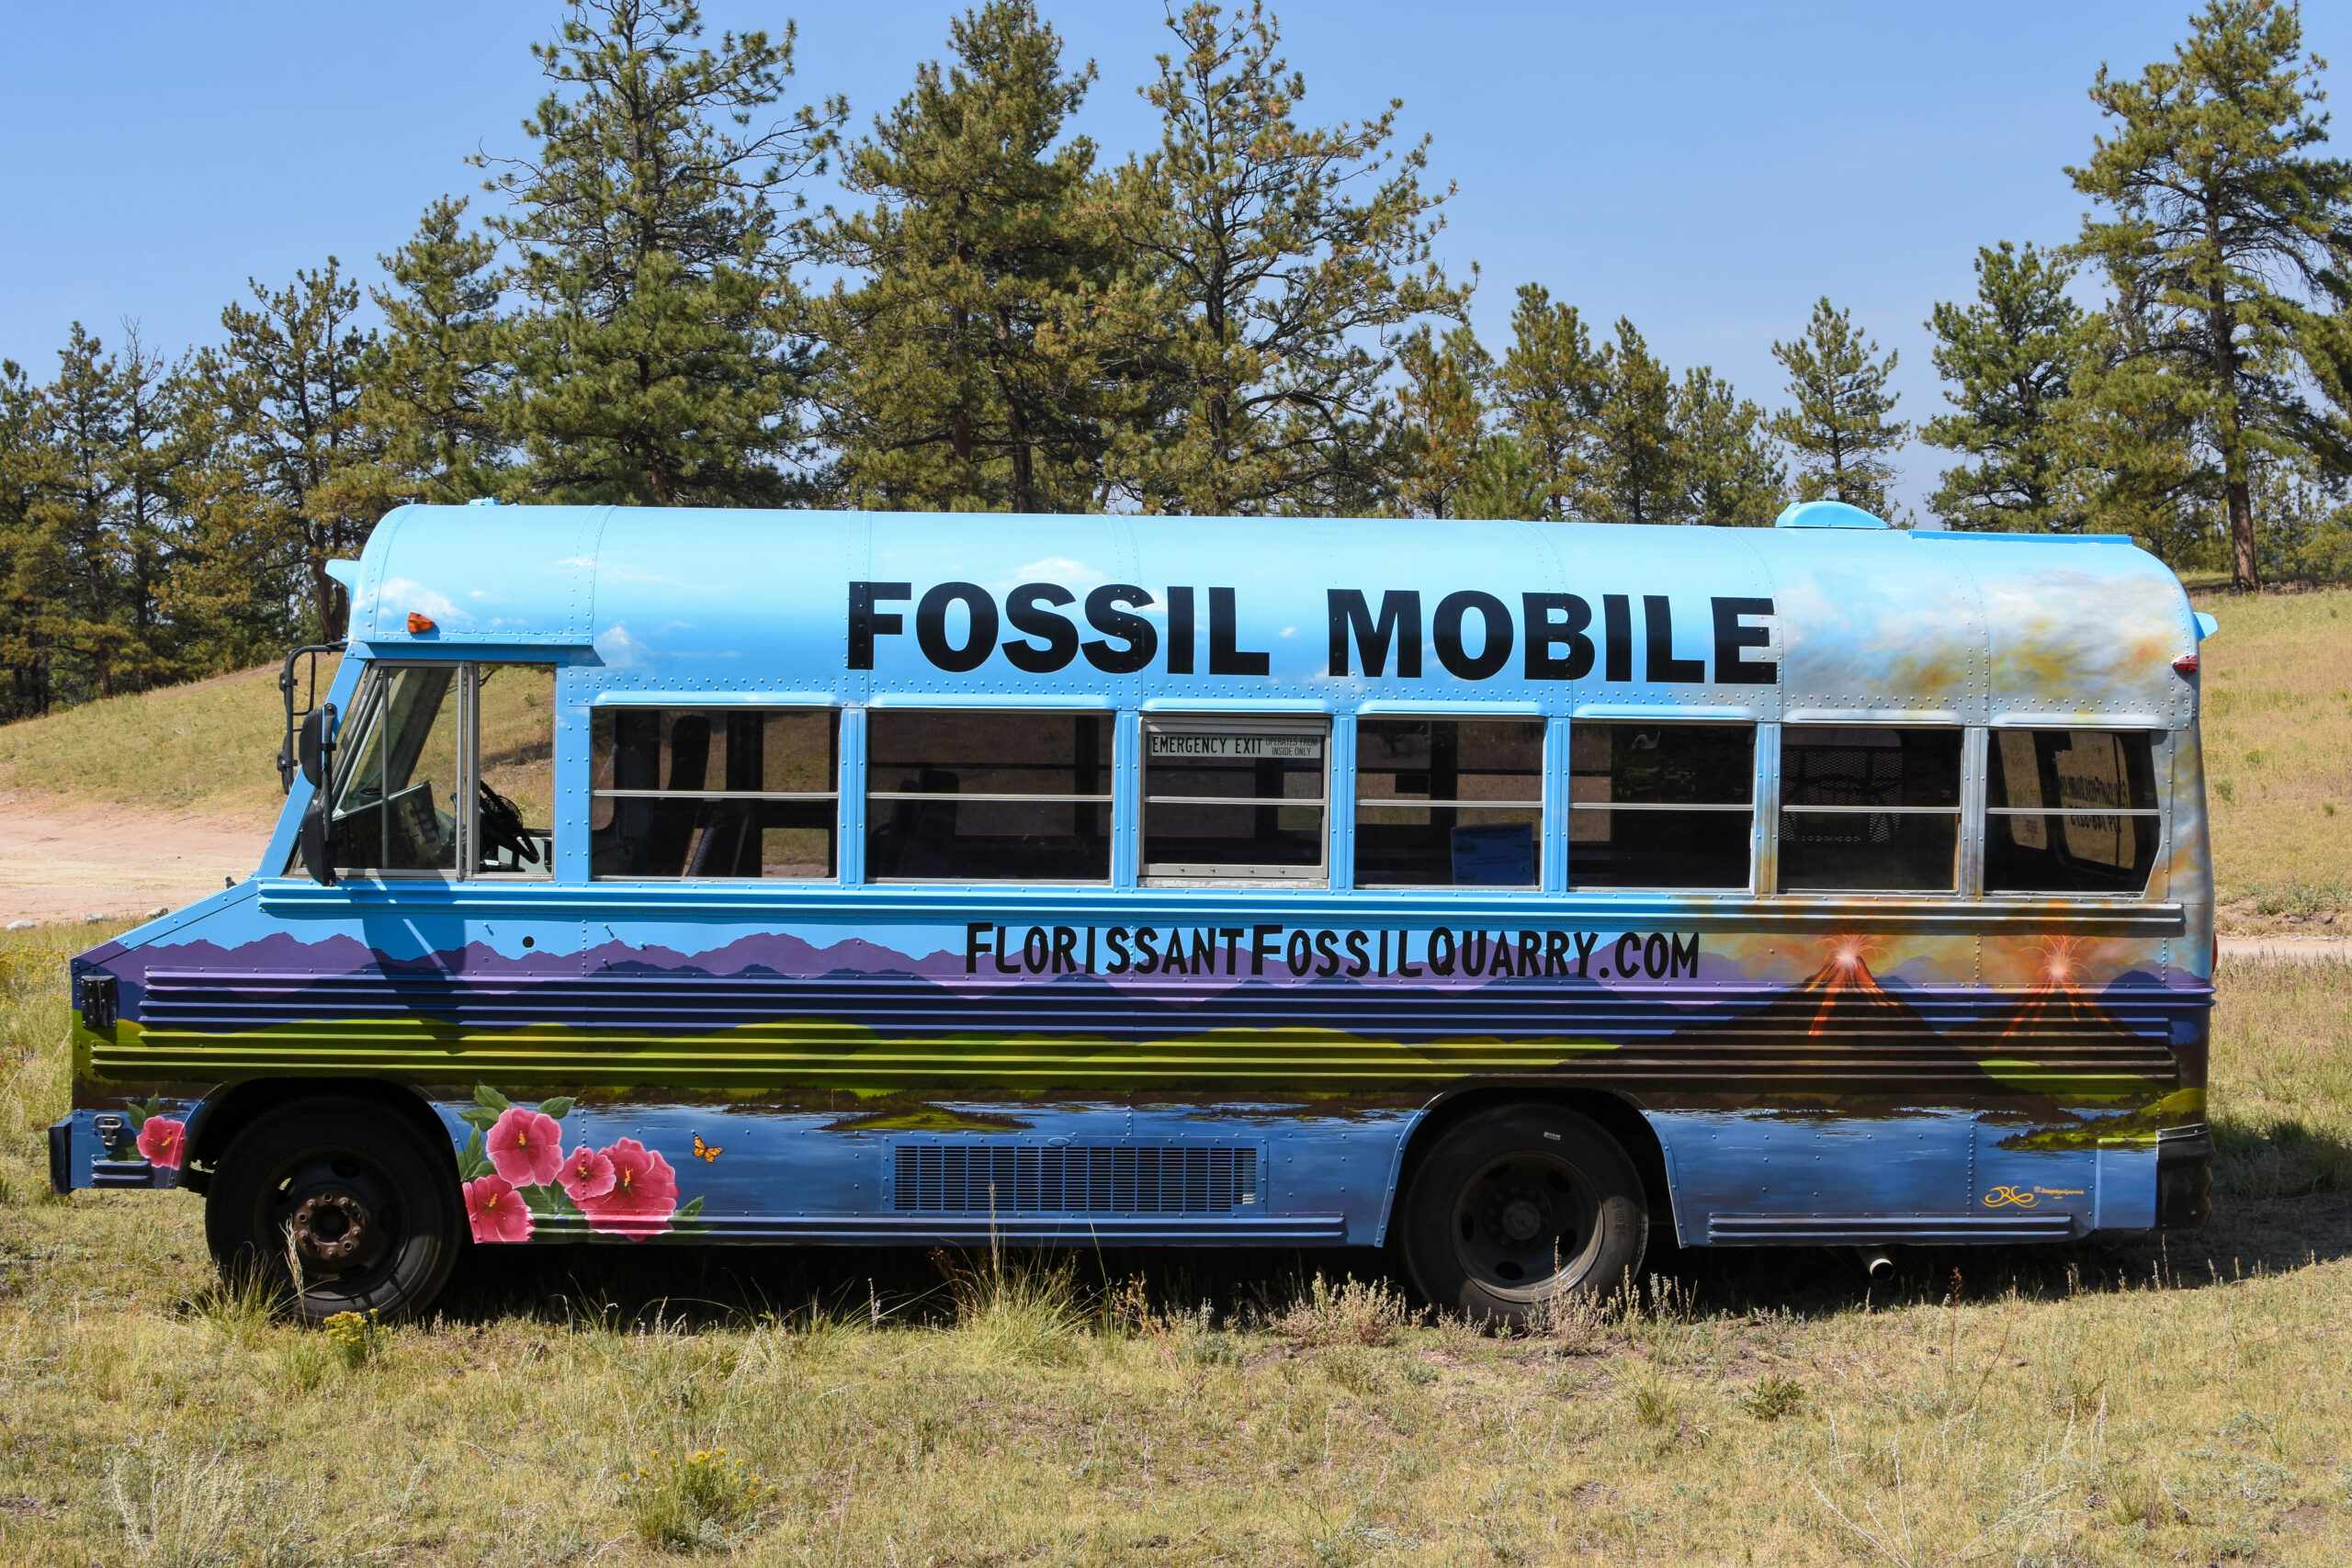 Fossil Mobile